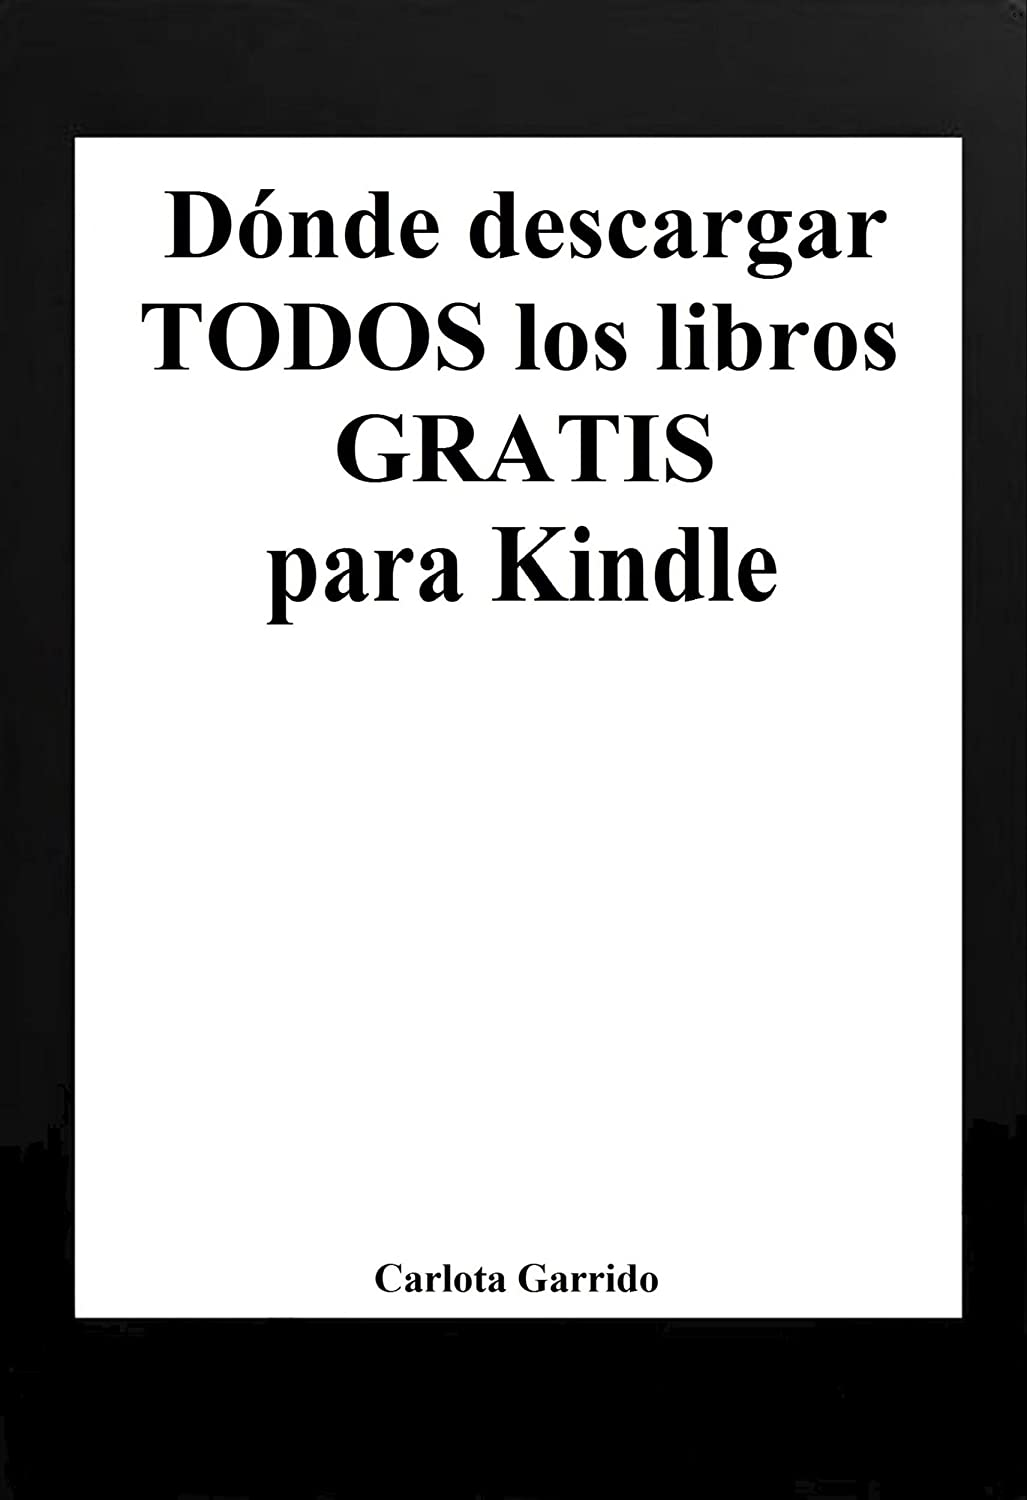 Ebook kindle libros